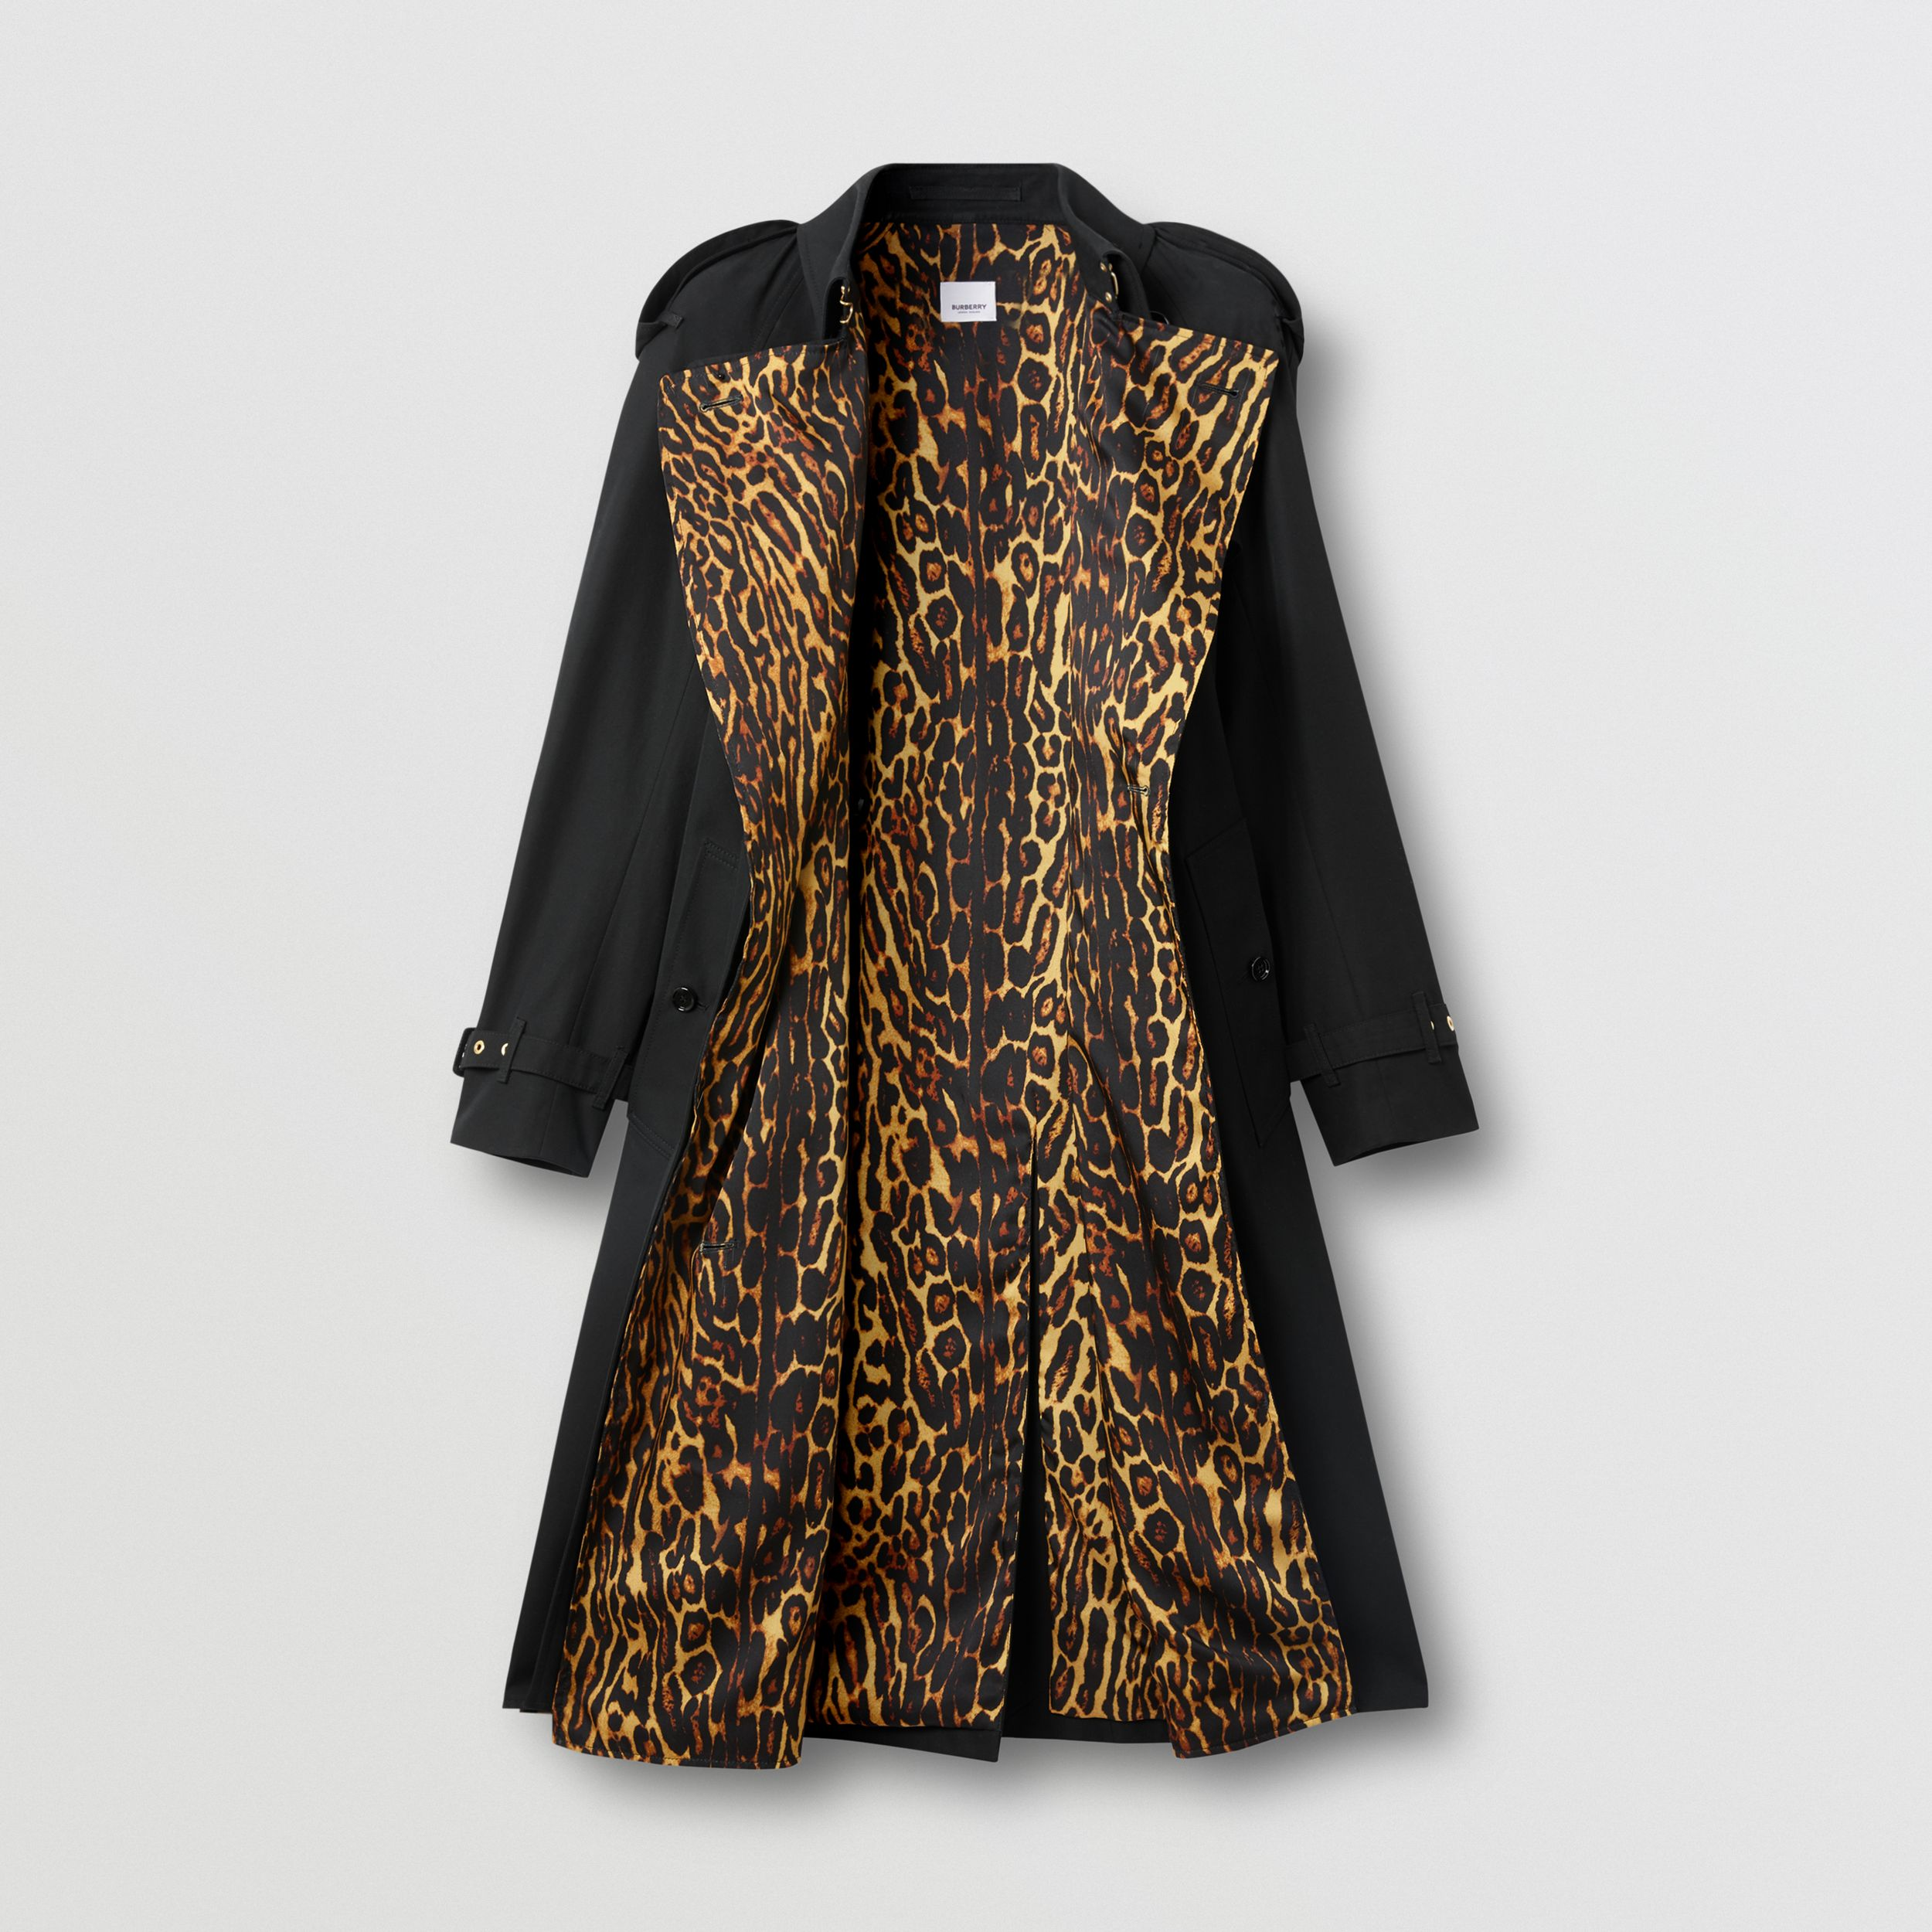 Leopard Print-lined Cotton Gabardine Trench Coat in Black - Women | Burberry - 4